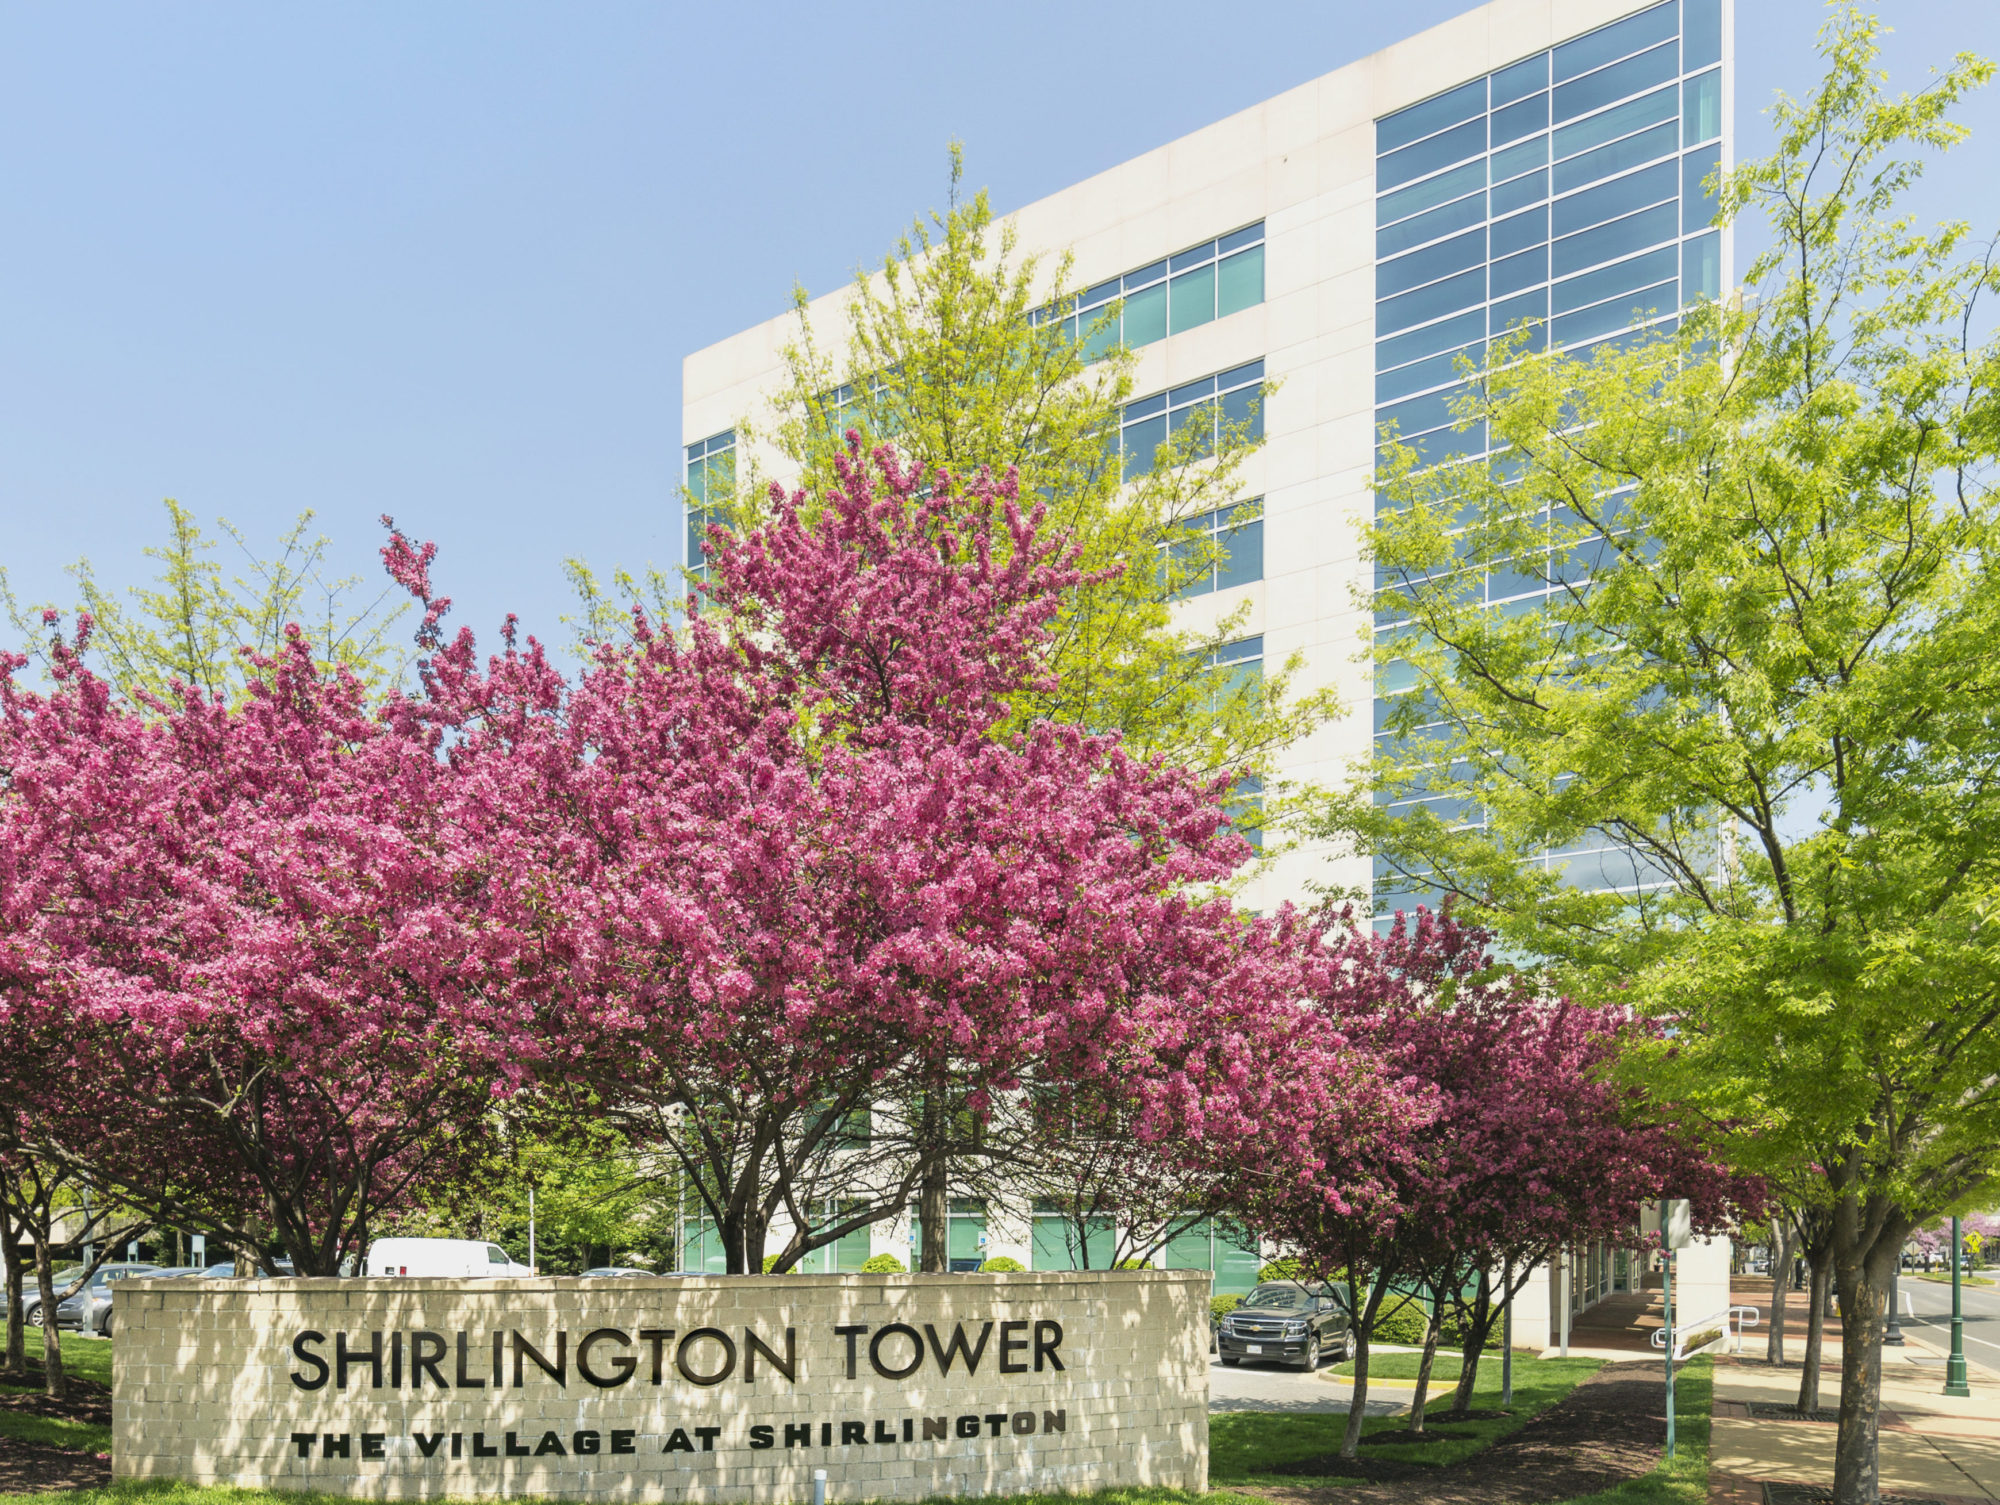 Shirlington Tower